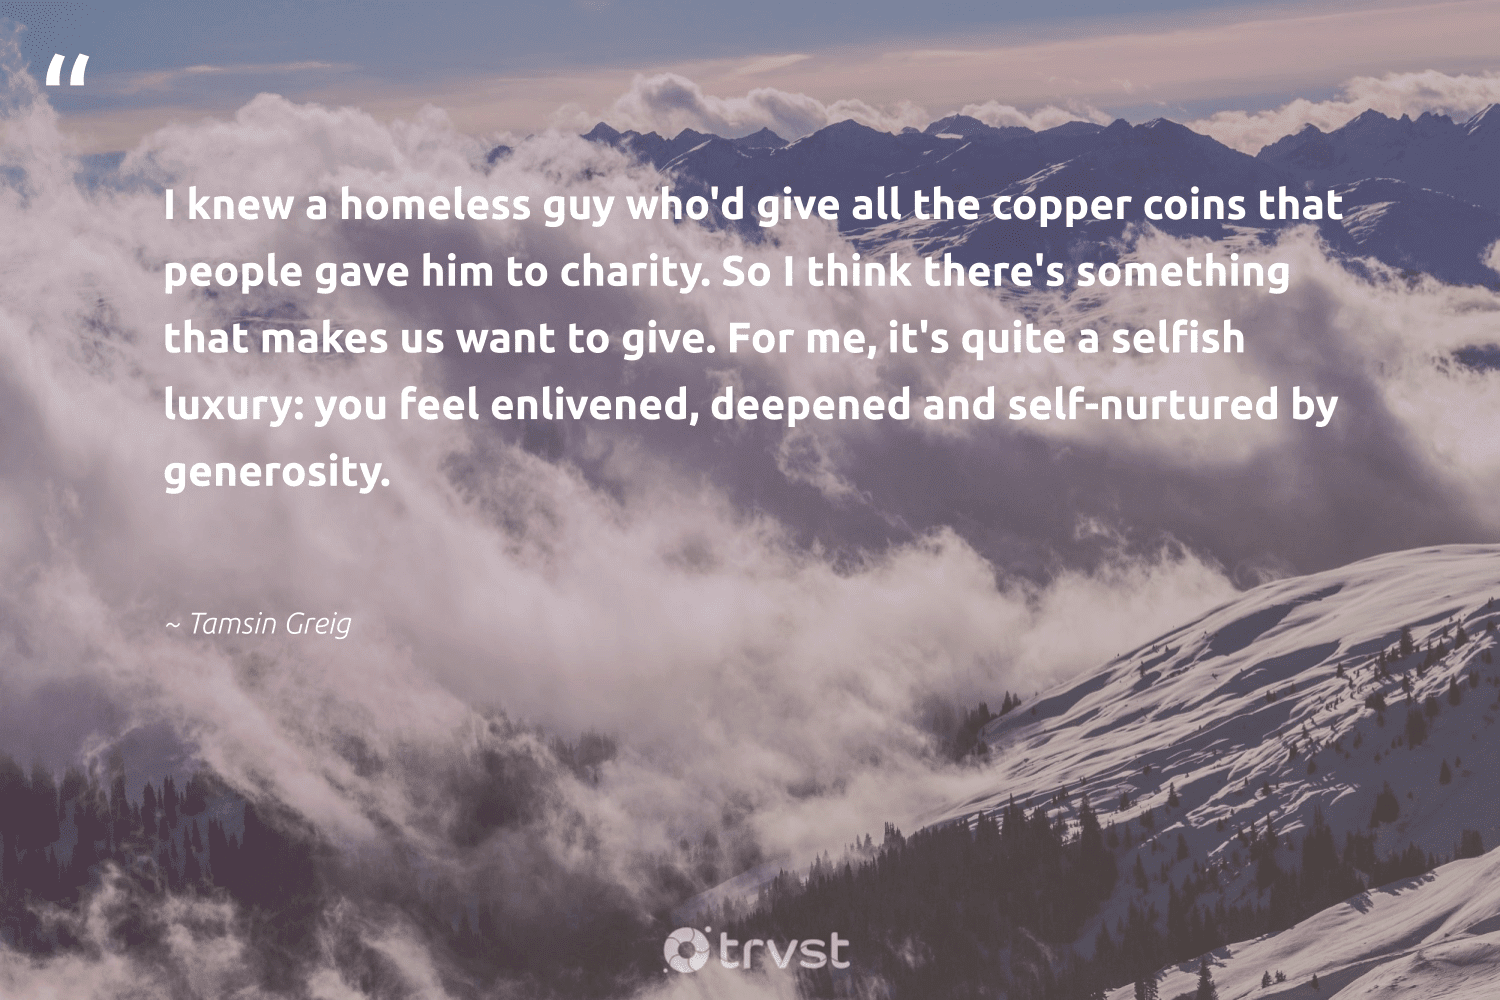 """""""I knew a homeless guy who'd give all the copper coins that people gave him to charity. So I think there's something that makes us want to give. For me, it's quite a selfish luxury: you feel enlivened, deepened and self-nurtured by generosity.""""  - Tamsin Greig #trvst #quotes #homeless #homelessness #socialchange #equalopportunity #changetheworld #giveback #weareallone #planetearthfirst #dogood #equalrights"""